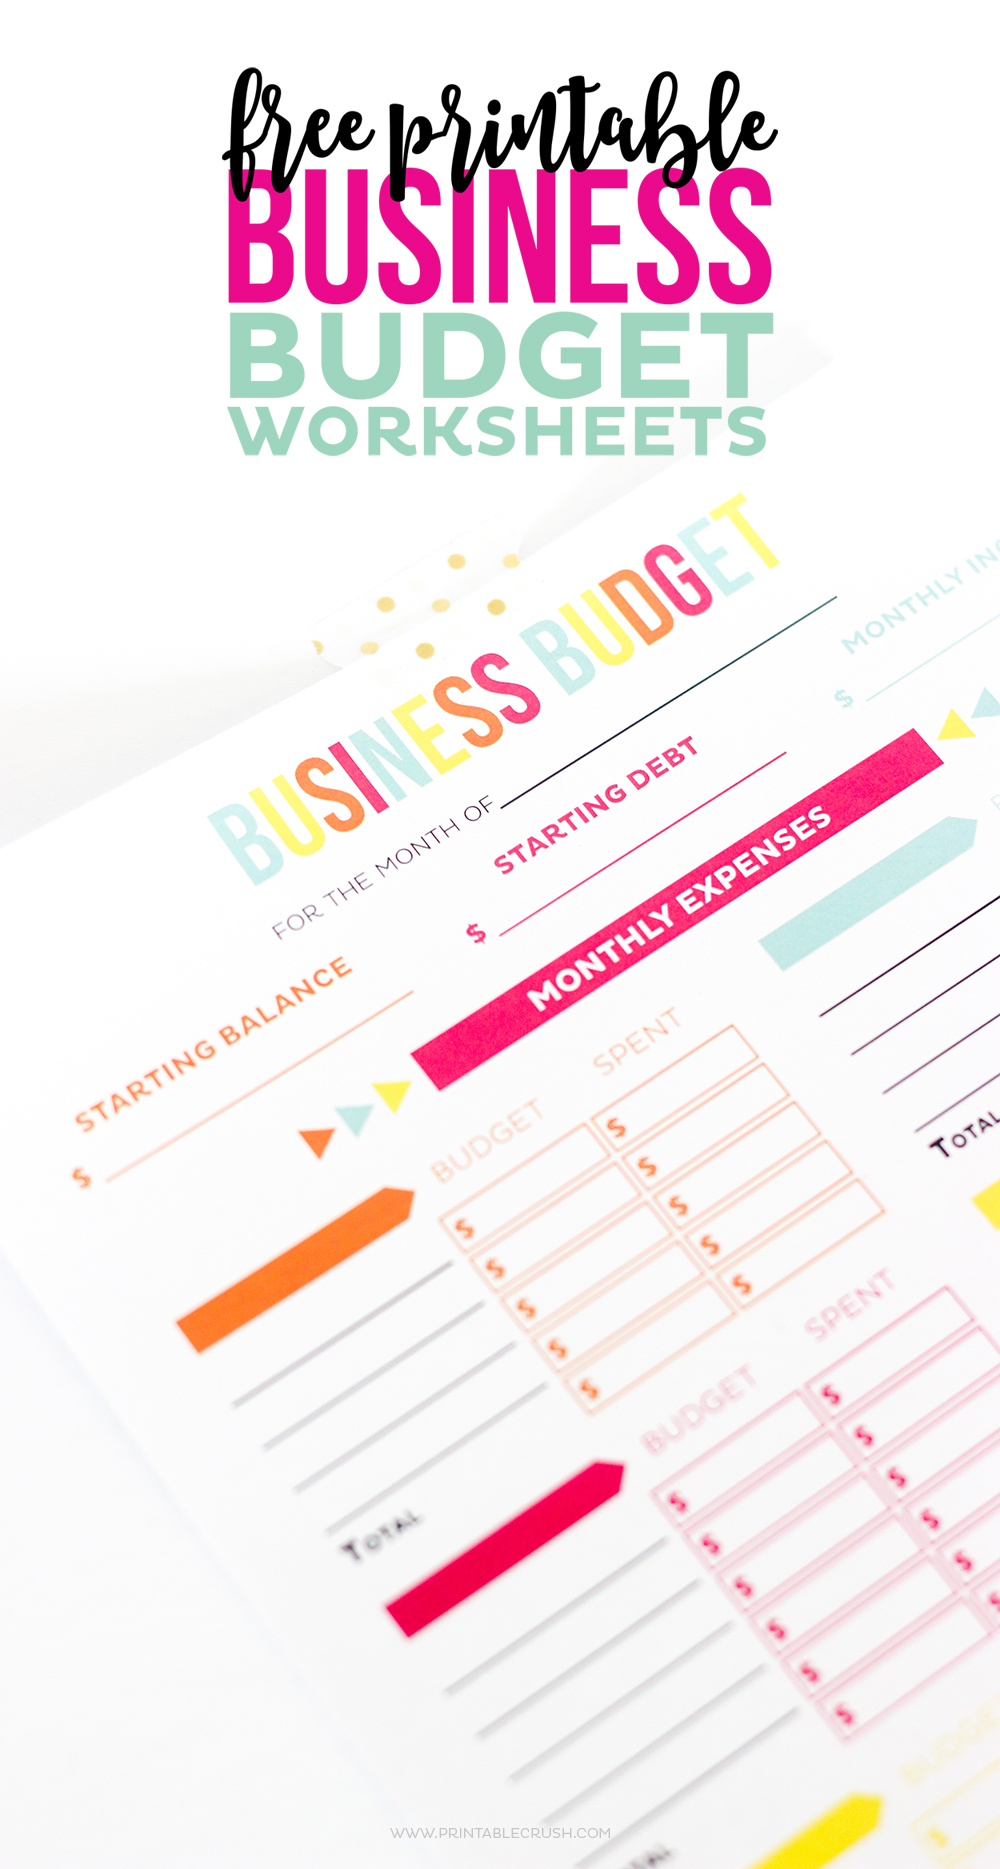 Worksheets Free Online Budget Worksheet free printable business budget worksheets crush make tax time a little less so with these includes